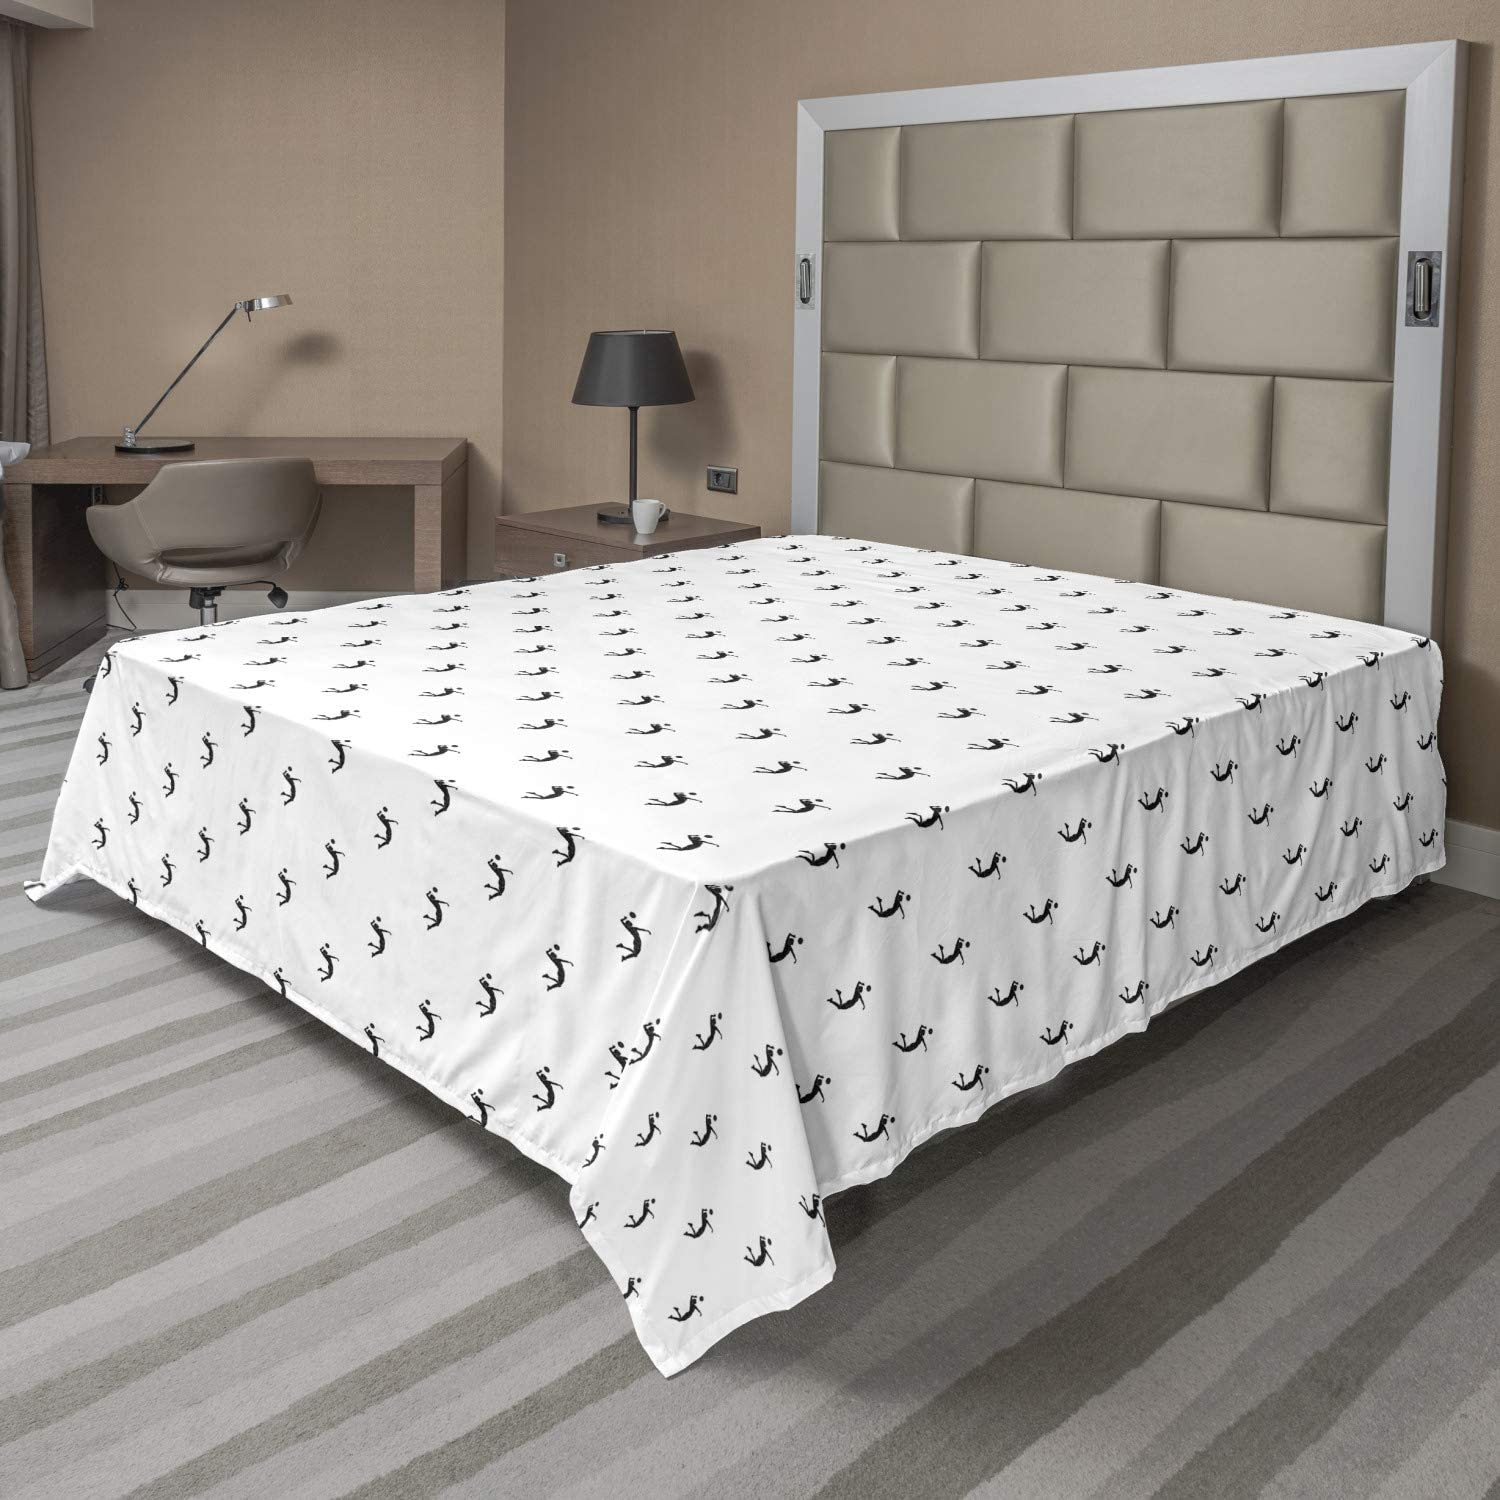 Ambesonne Bed Top 1 Piece Flat Sheet Oversized and Lightweight Printed Fabric